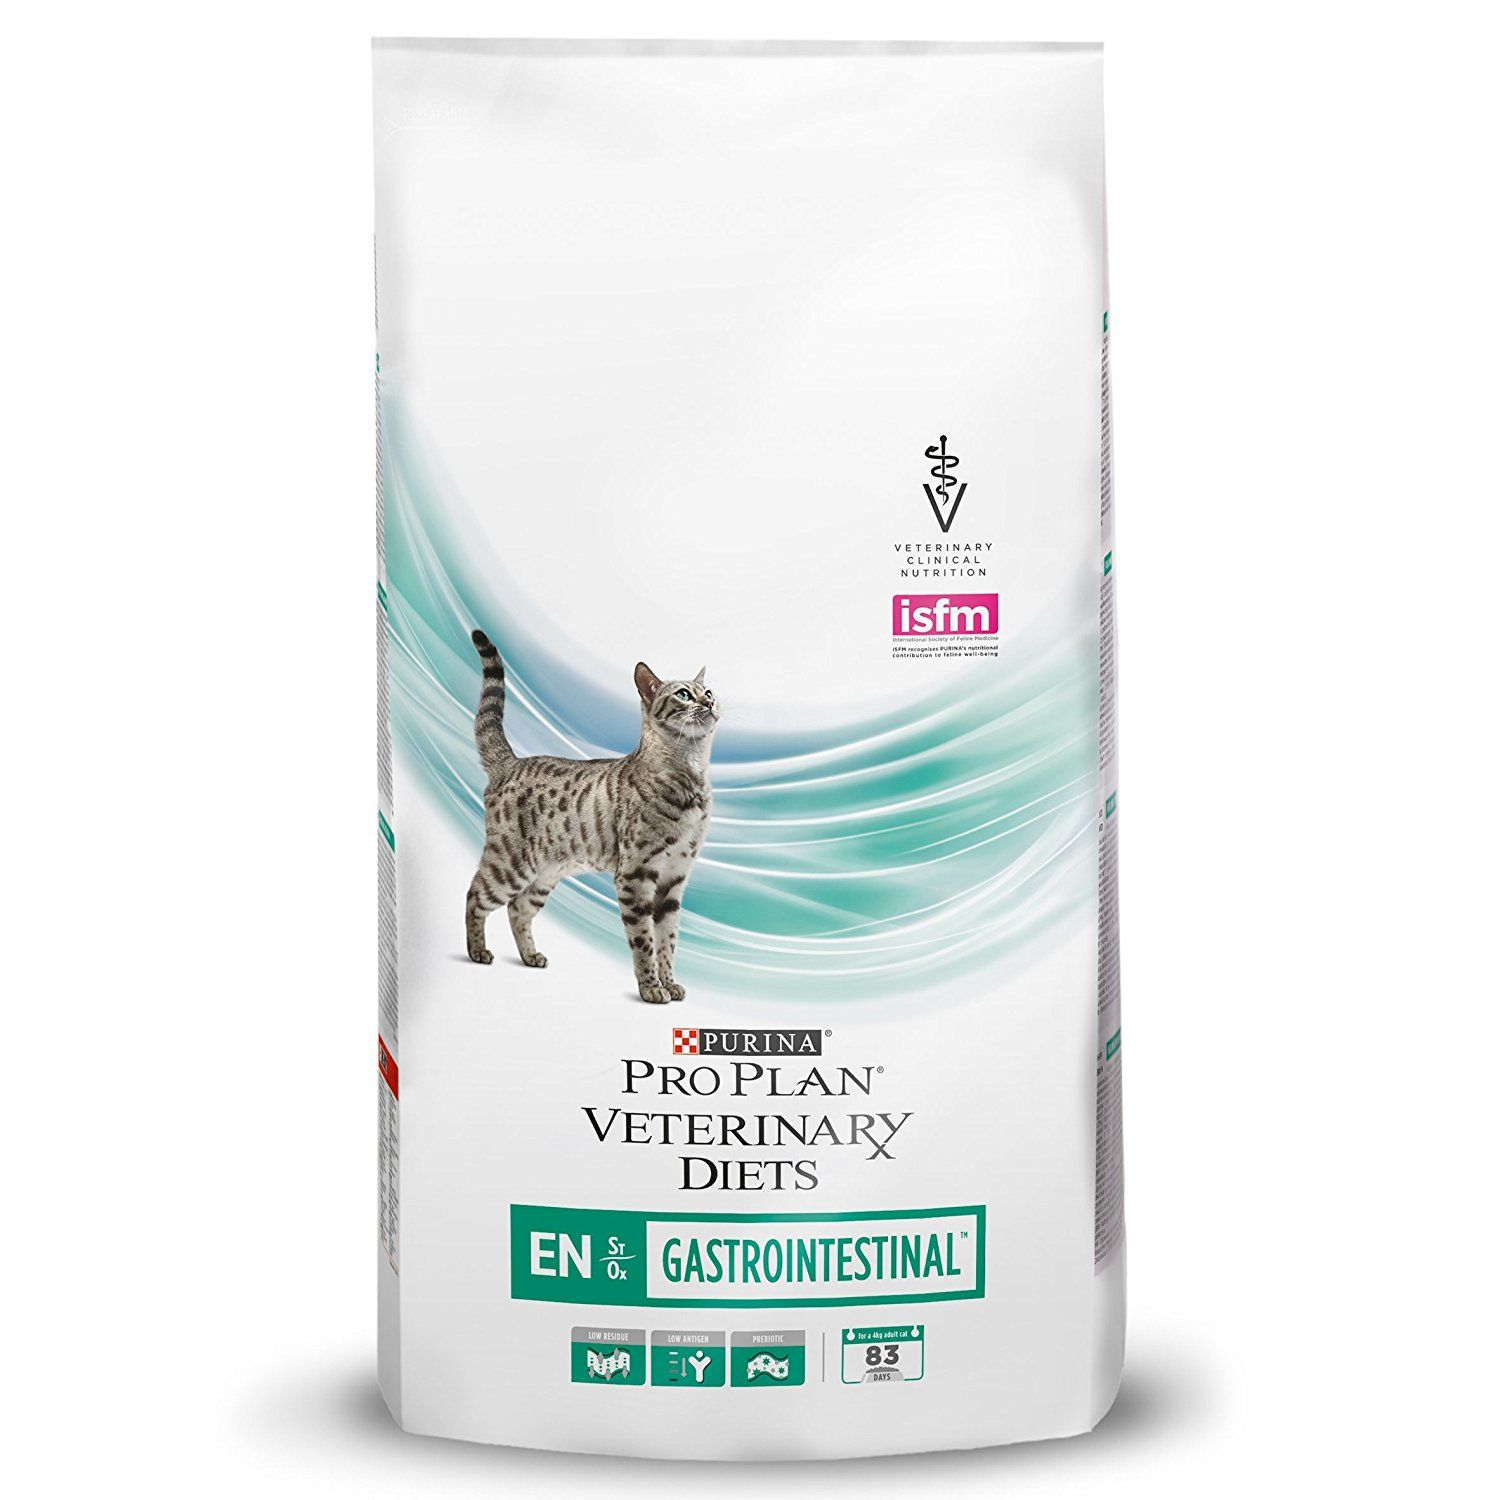 Purina Pro Plan Dry Cat Food Veterinary Diets En St Ox Gastrointestinal Clinical Diet 5 Kg More Details Can Be Found Cat Food Purina Pro Plan Dry Cat Food